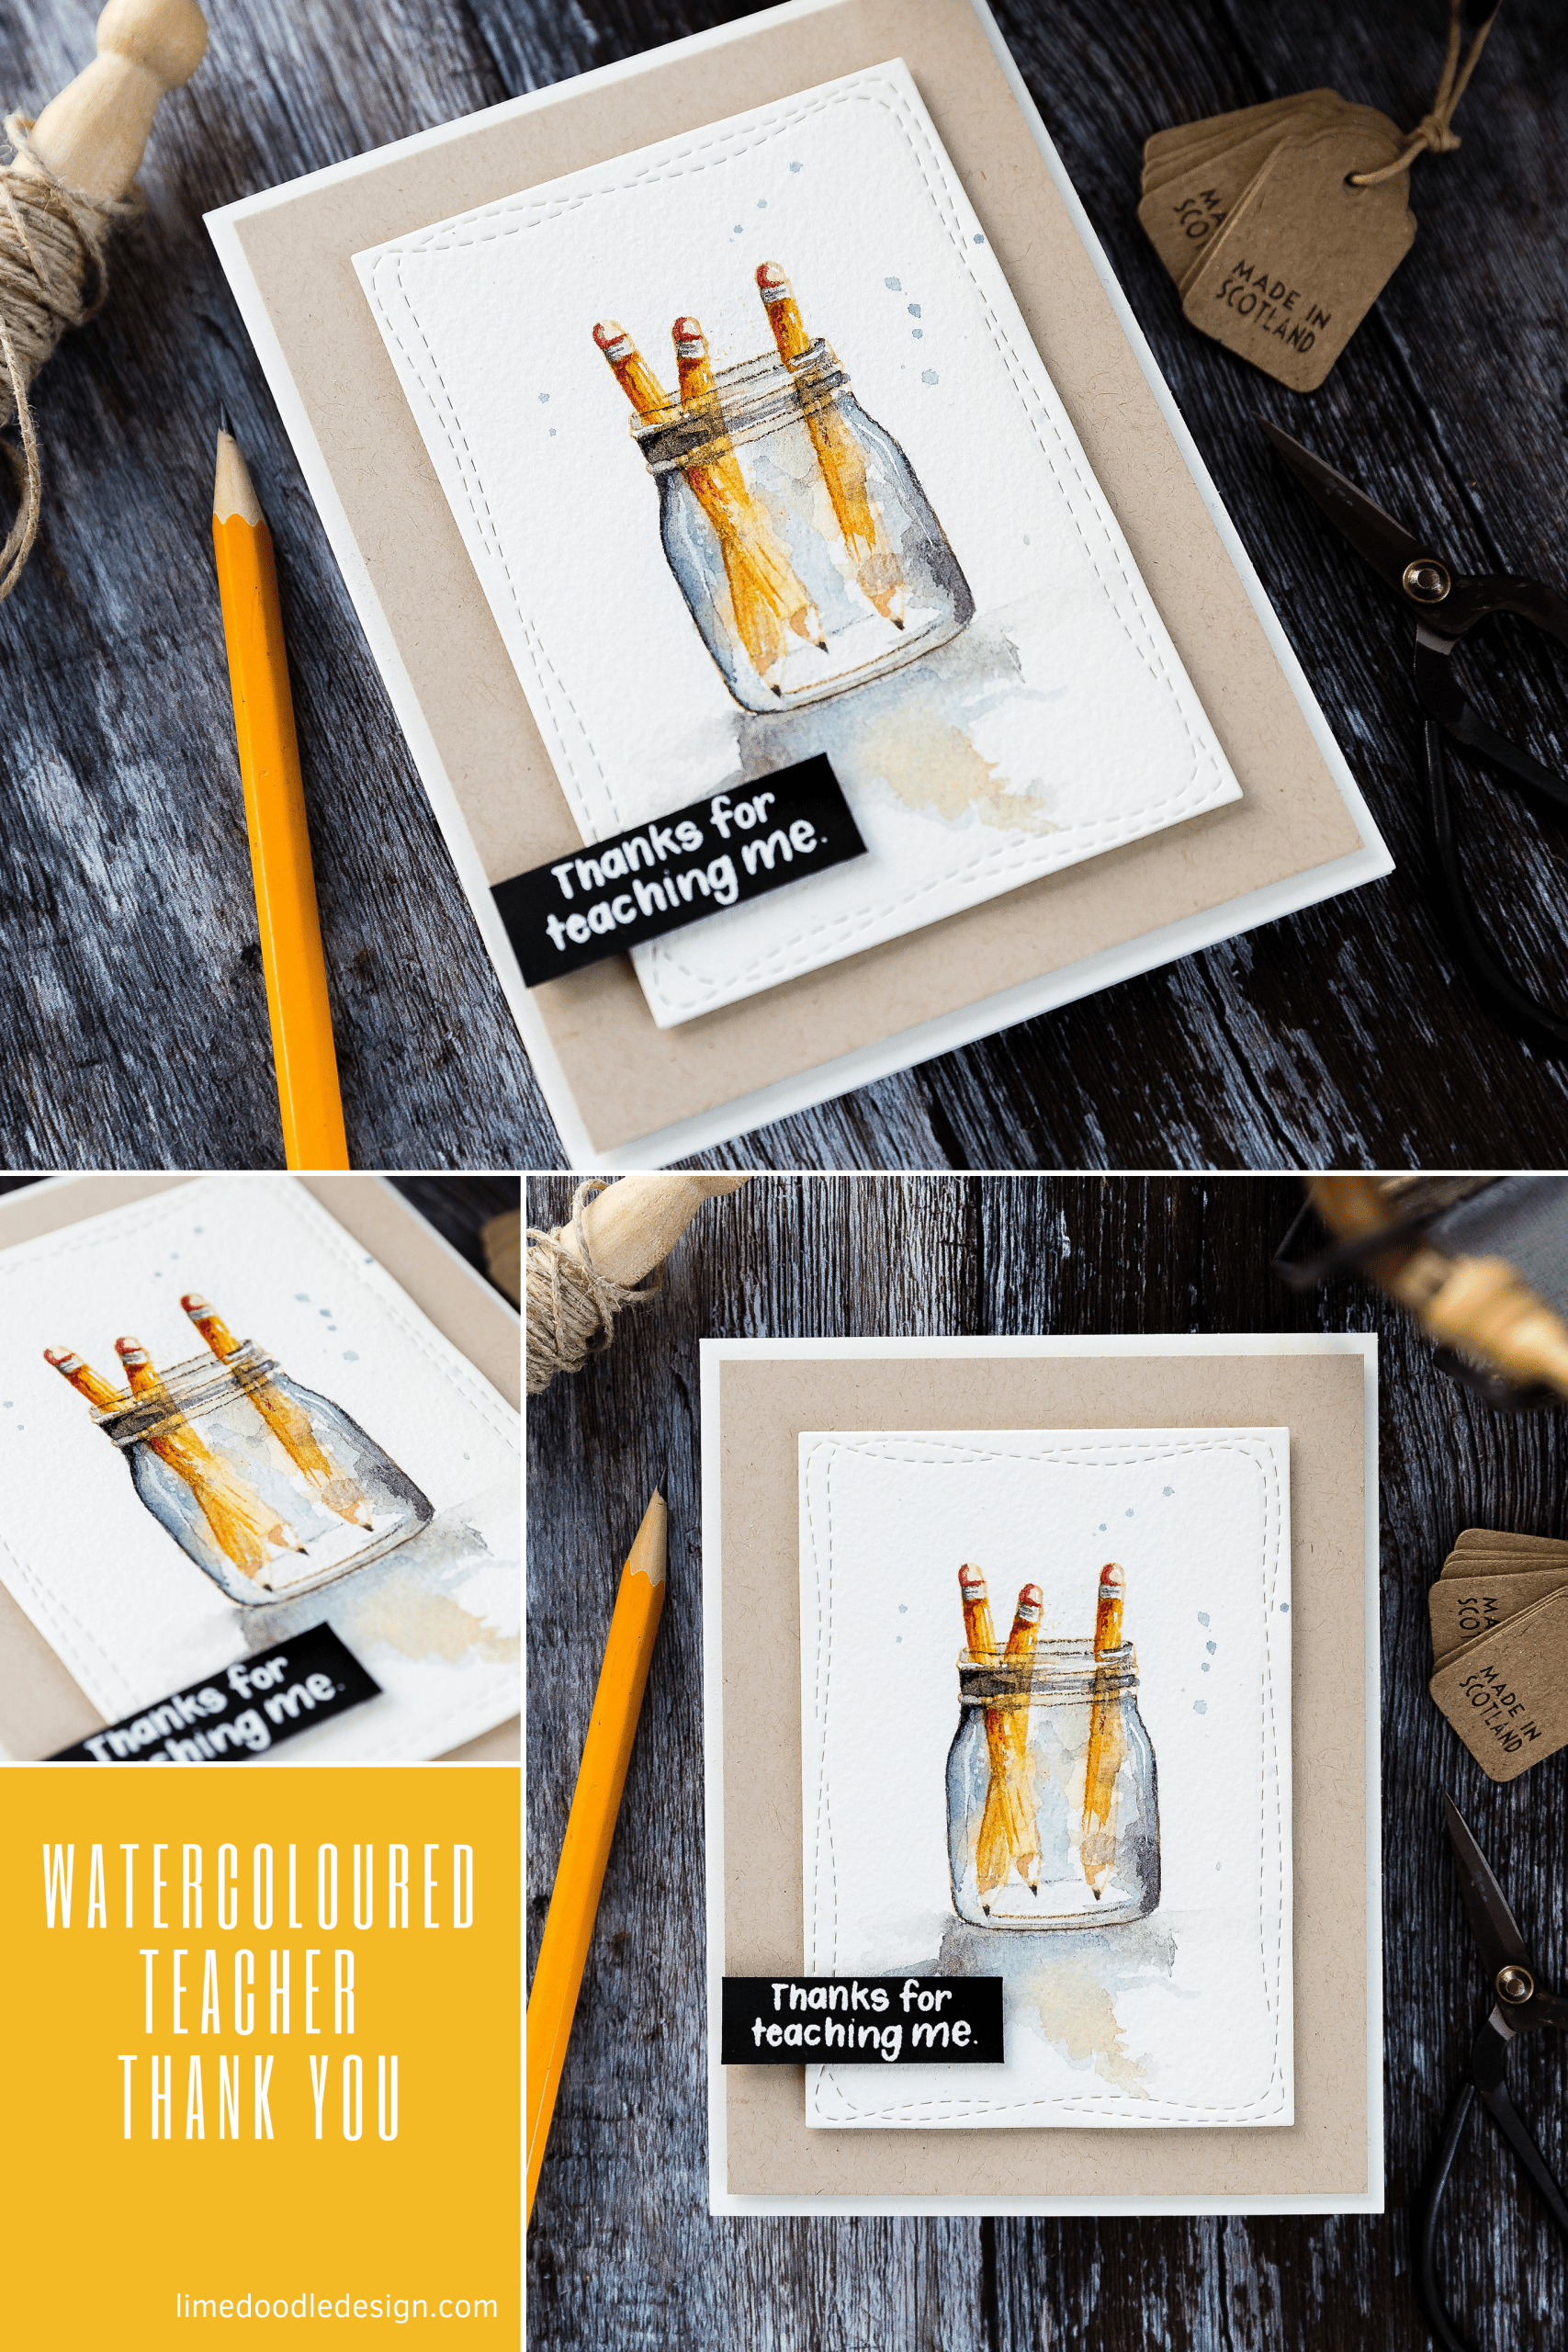 Often, the simplest cards are the ones that speak to me more - clean design and pop of colour are all I really want ✏️😃 Handmade, watercoloured teacher thank you card. Find out more here: https://limedoodledesign.com/2019/08/watercoloured-teacher-thank-you/